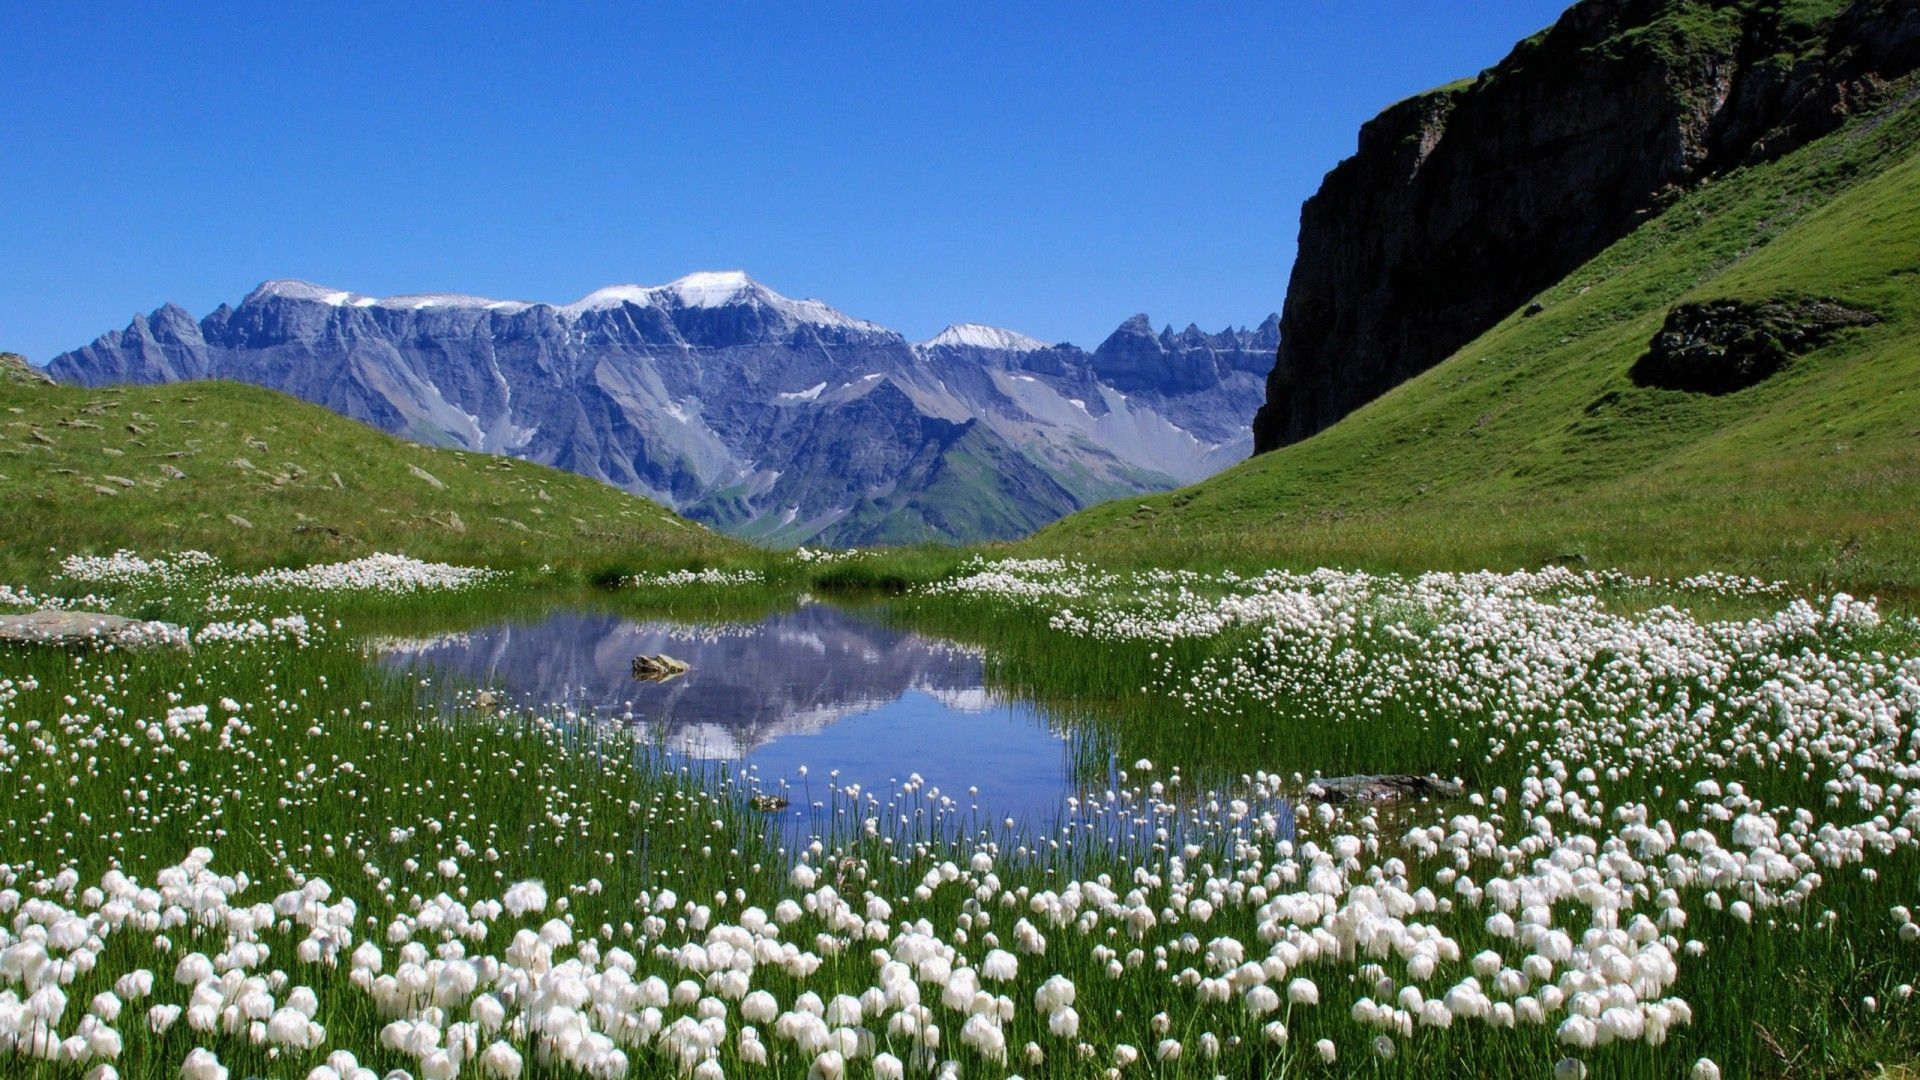 Oma Wathen Top Hd Swiss Wallpapers Hdq Beautiful Nature Spring Beautiful Nature Earth Pictures